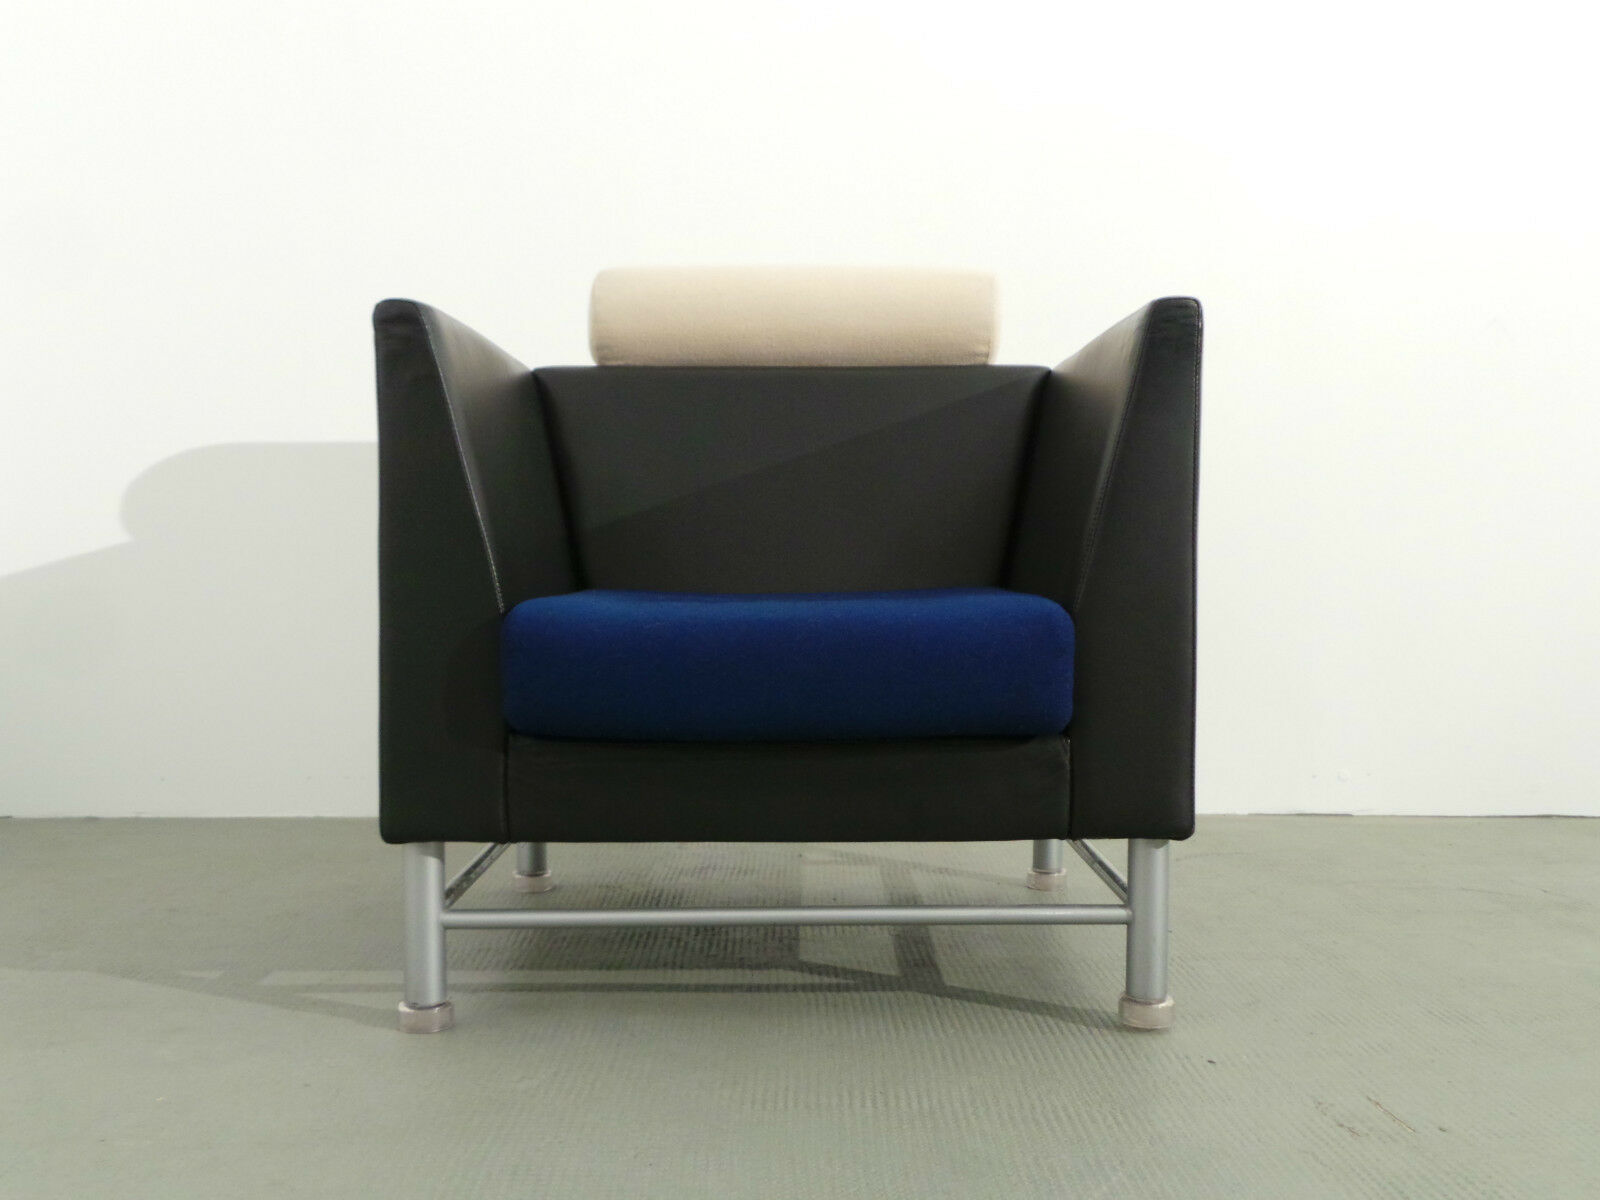 Sessel Gebraucht Kaufen Bonn Knoll International Sessel Modell East Side Ettore Sottsass Leder